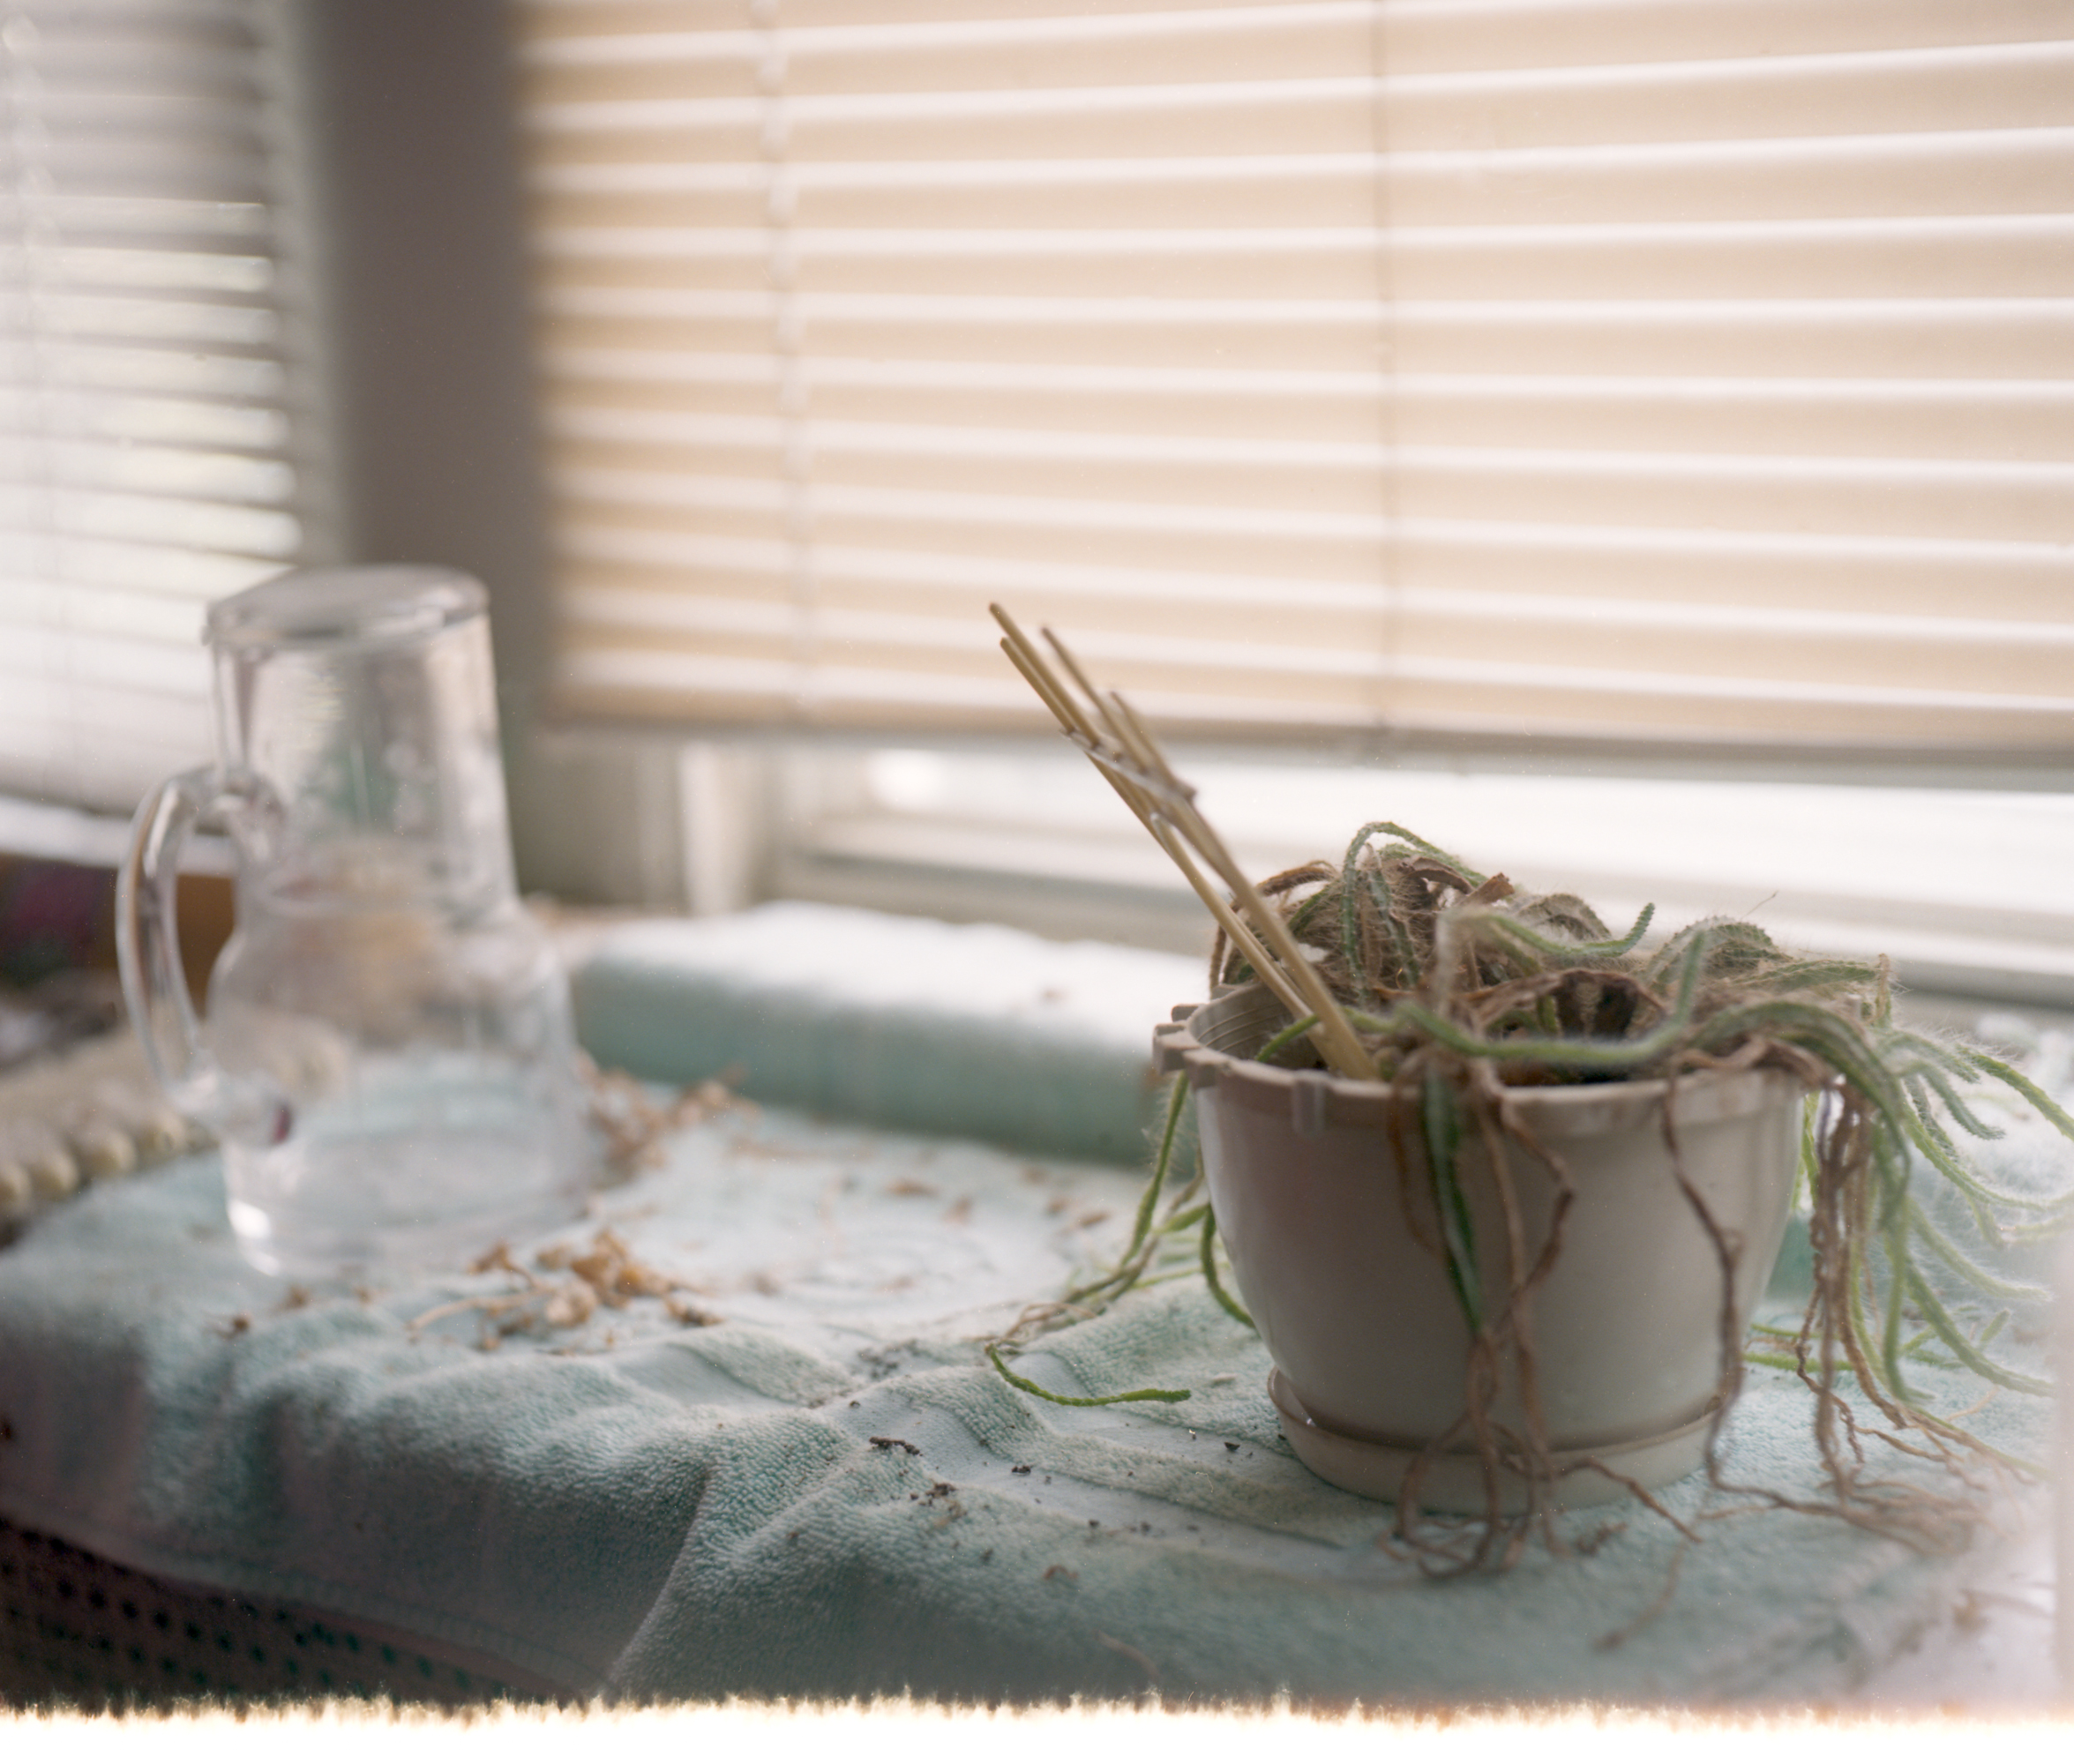 Dead plant at window